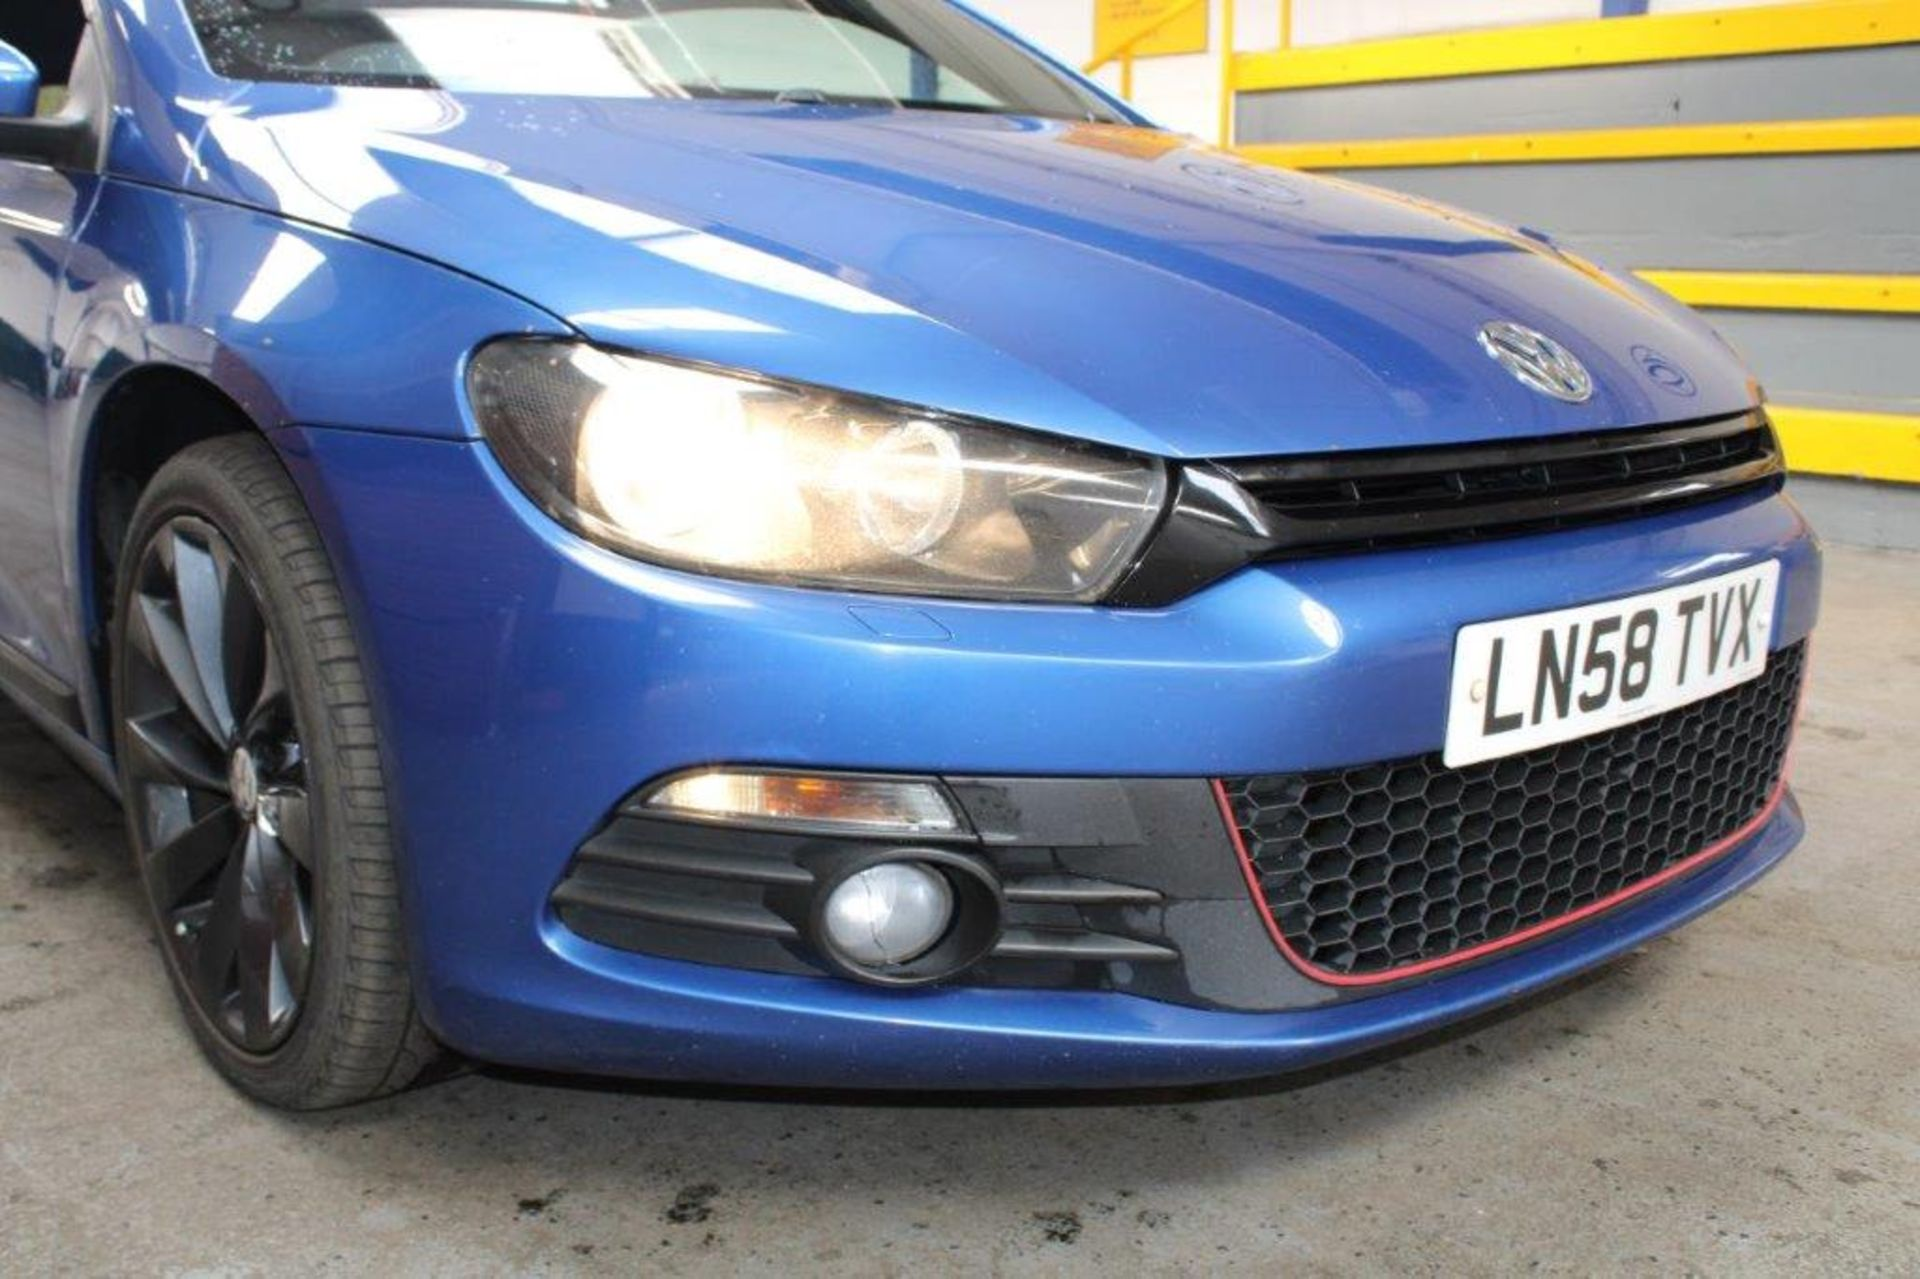 58 08 VW Scirocco GT - Image 23 of 29